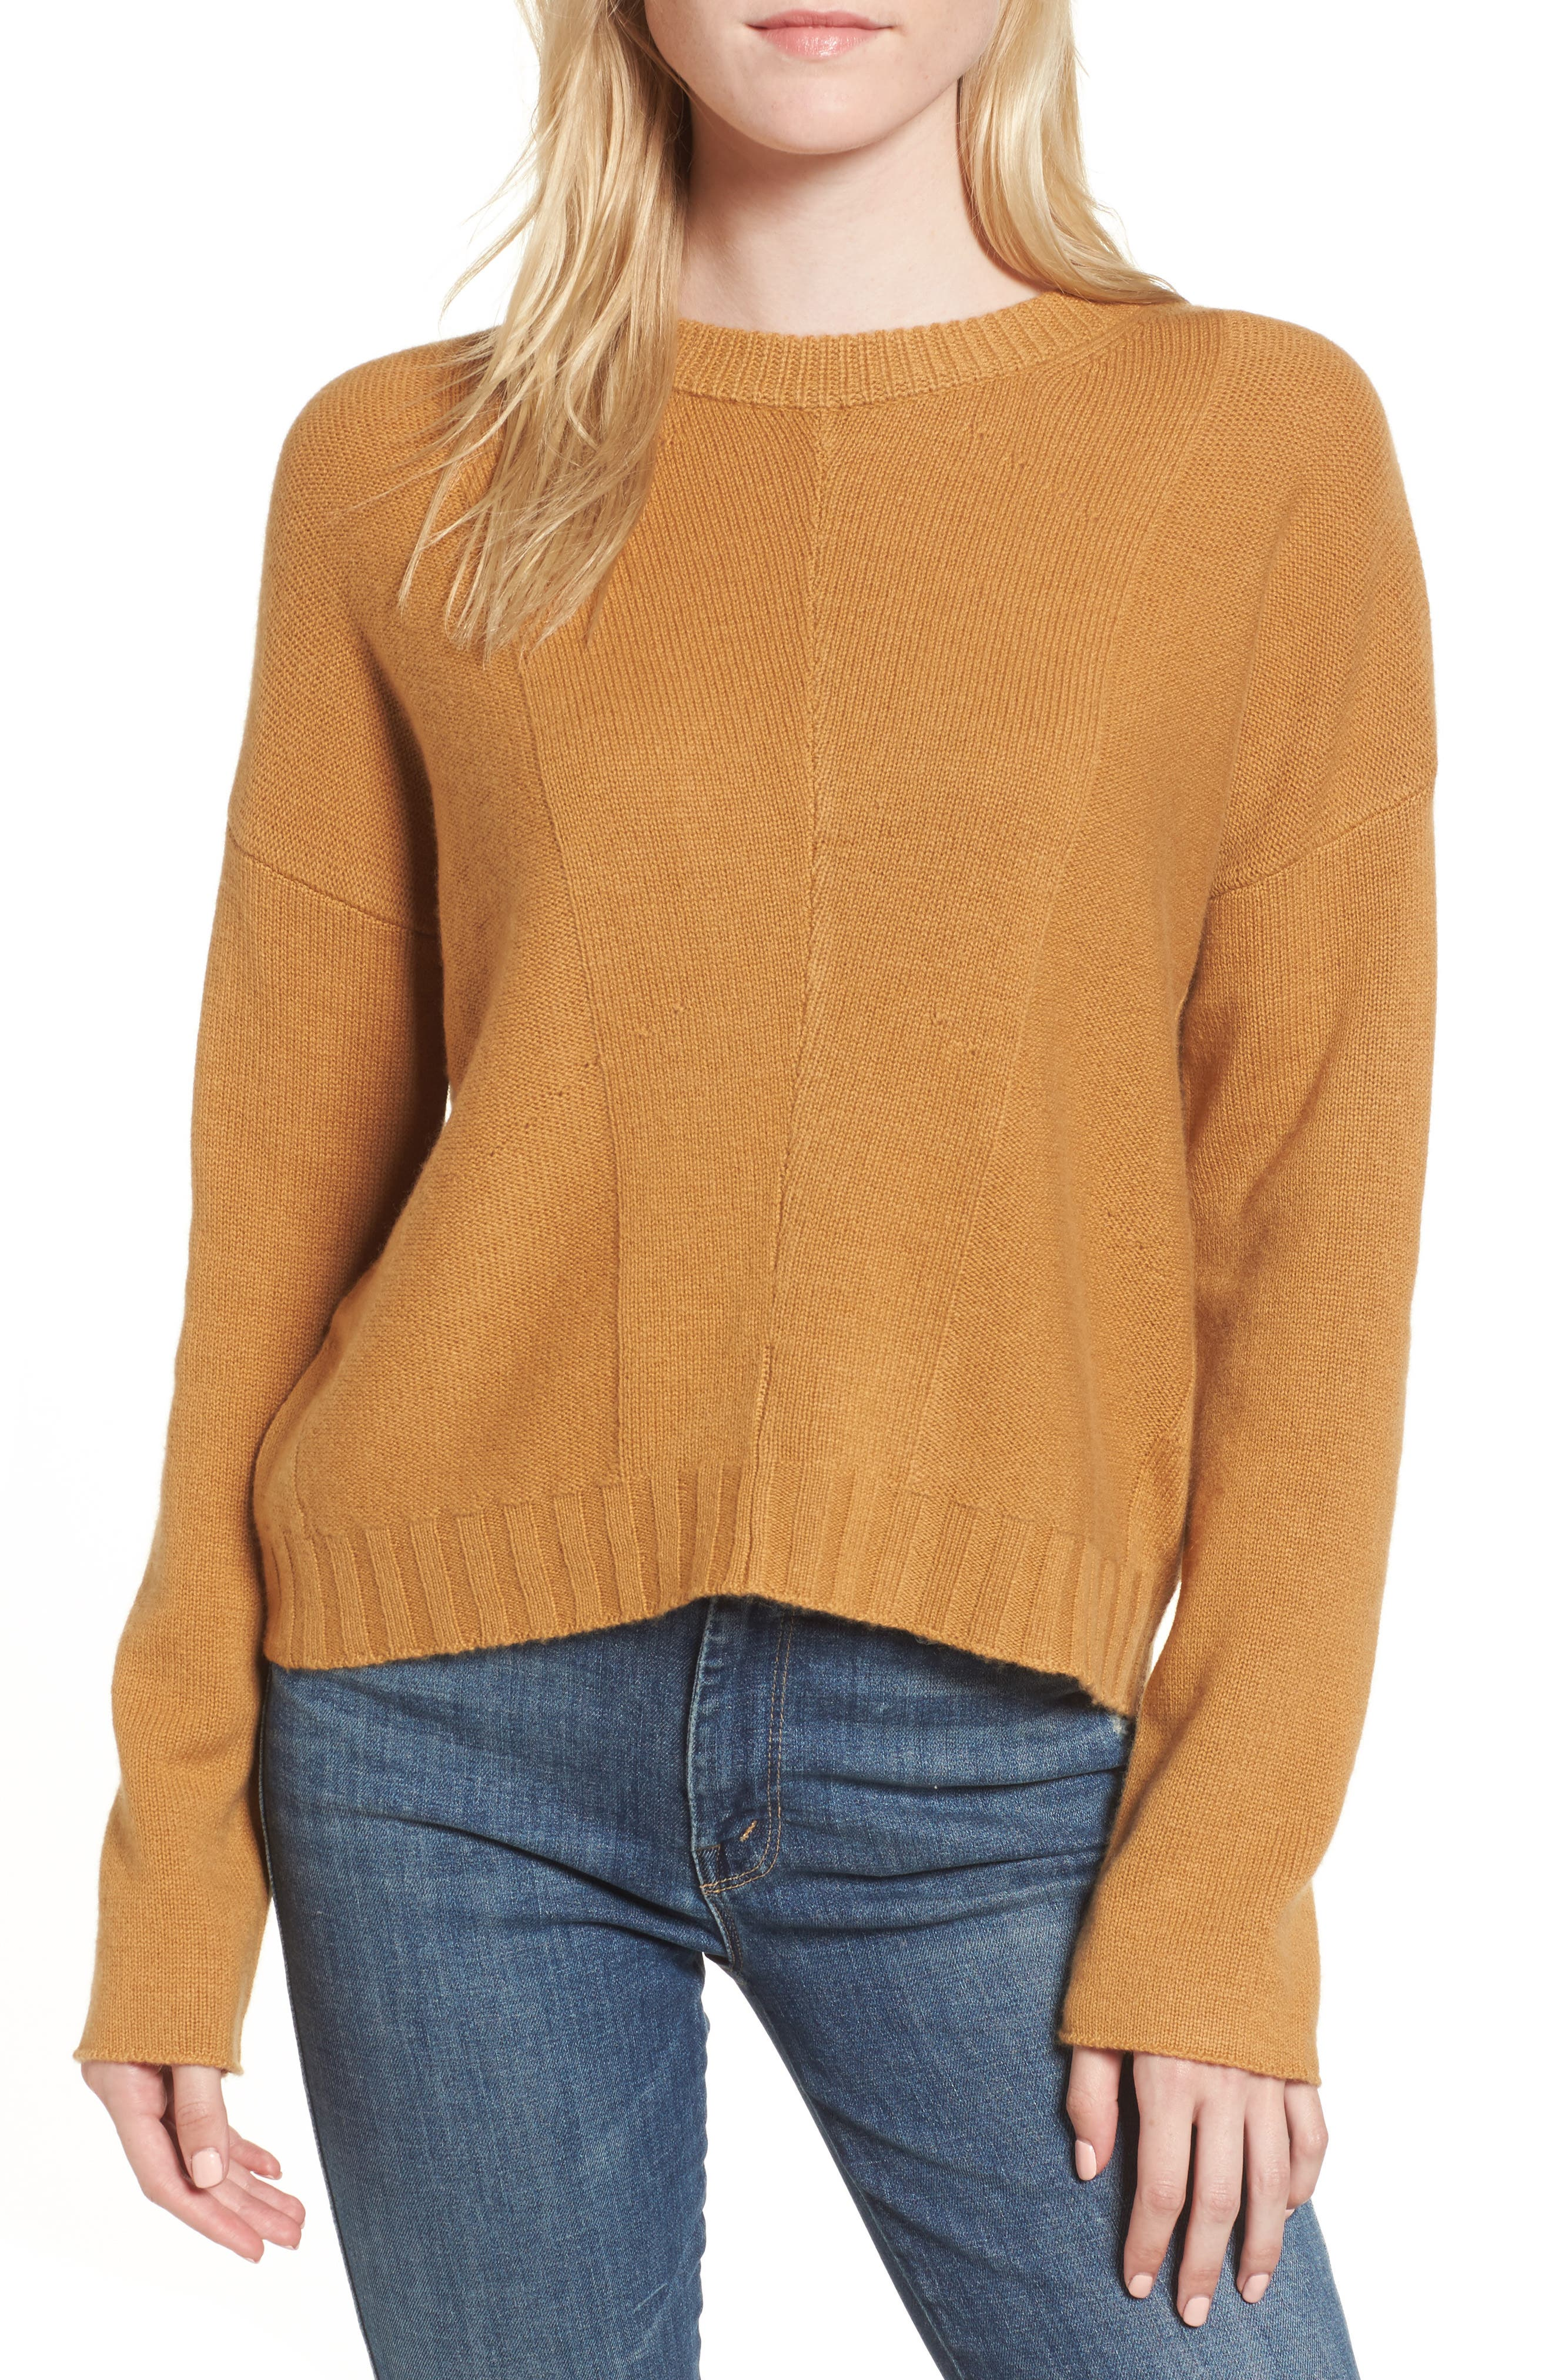 Joanna Wool & Cashmere Sweater,                             Main thumbnail 1, color,                             200